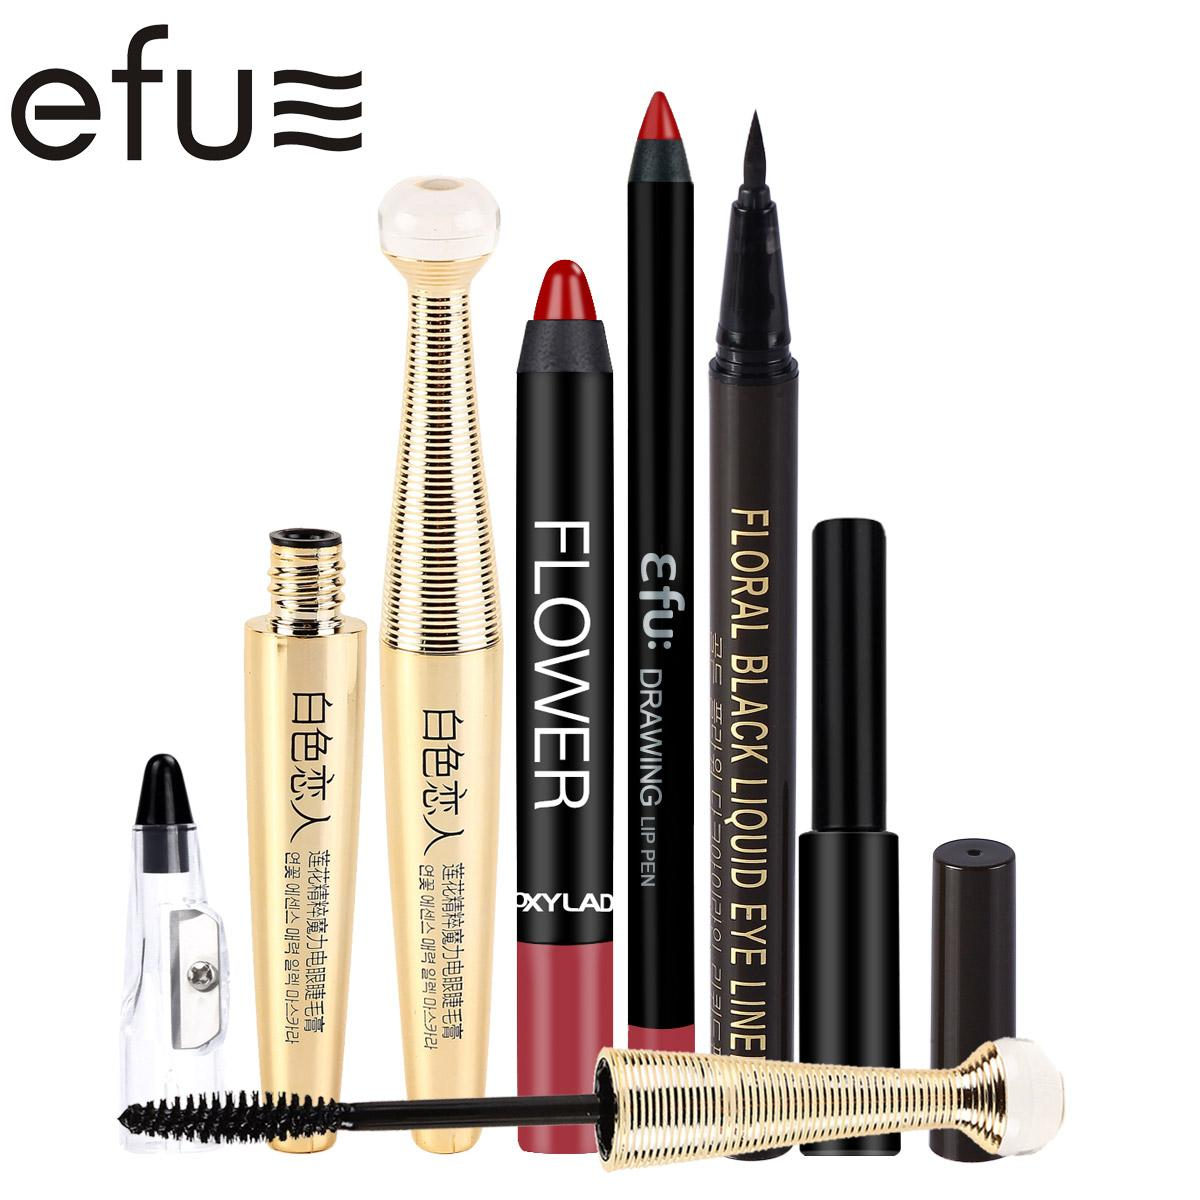 Makeup set lip liner and lipstick and eyeliner mascara sharpener makeup set lip liner and lipstick and eyeliner mascara sharpener brand efu efus01 cosmetics makeup brushes from caodou 2388 dhgate izmirmasajfo